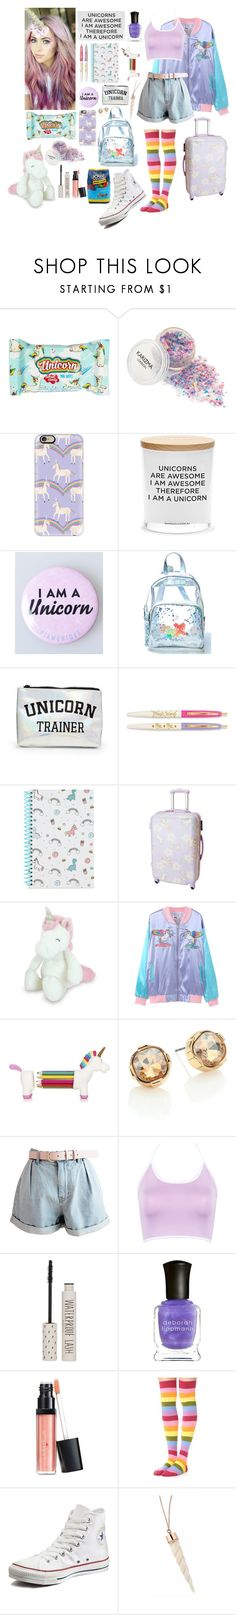 """The adventures of the traveling unicorn!"" by aby-ocampo ❤ liked on Polyvore featuring Casetify, Damselfly Candles, Current Mood, Forever 21, Night Owl Paper Goods, ABS by Allen Schwartz, WithChic, Topshop, Deborah Lippmann and Laura Geller"